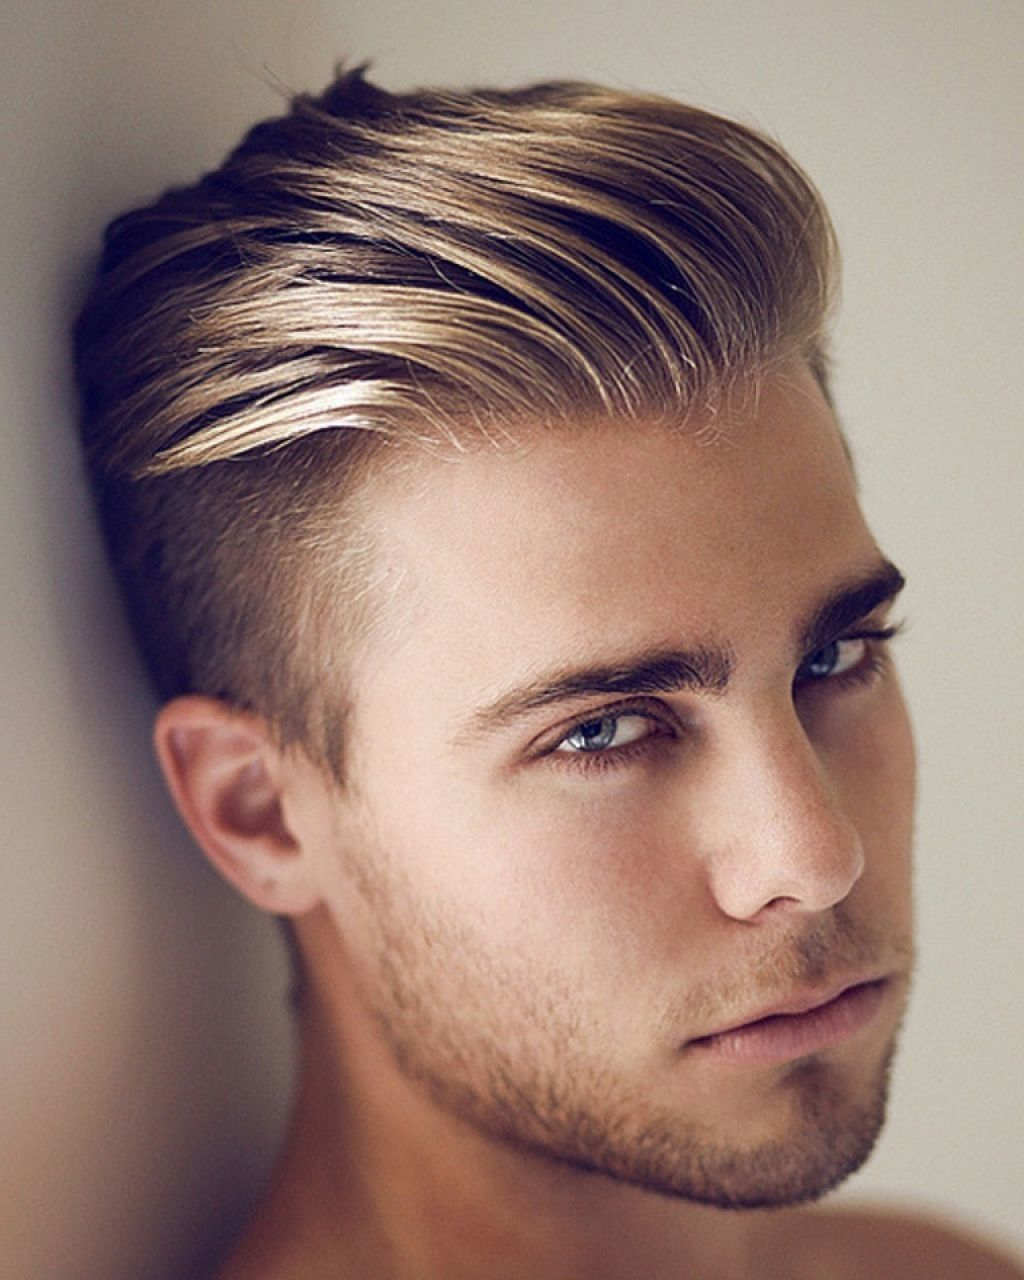 Undercut Slick Back Haircut Hipster Hairstyles Mens Hairstyles Short Mens Hairstyles